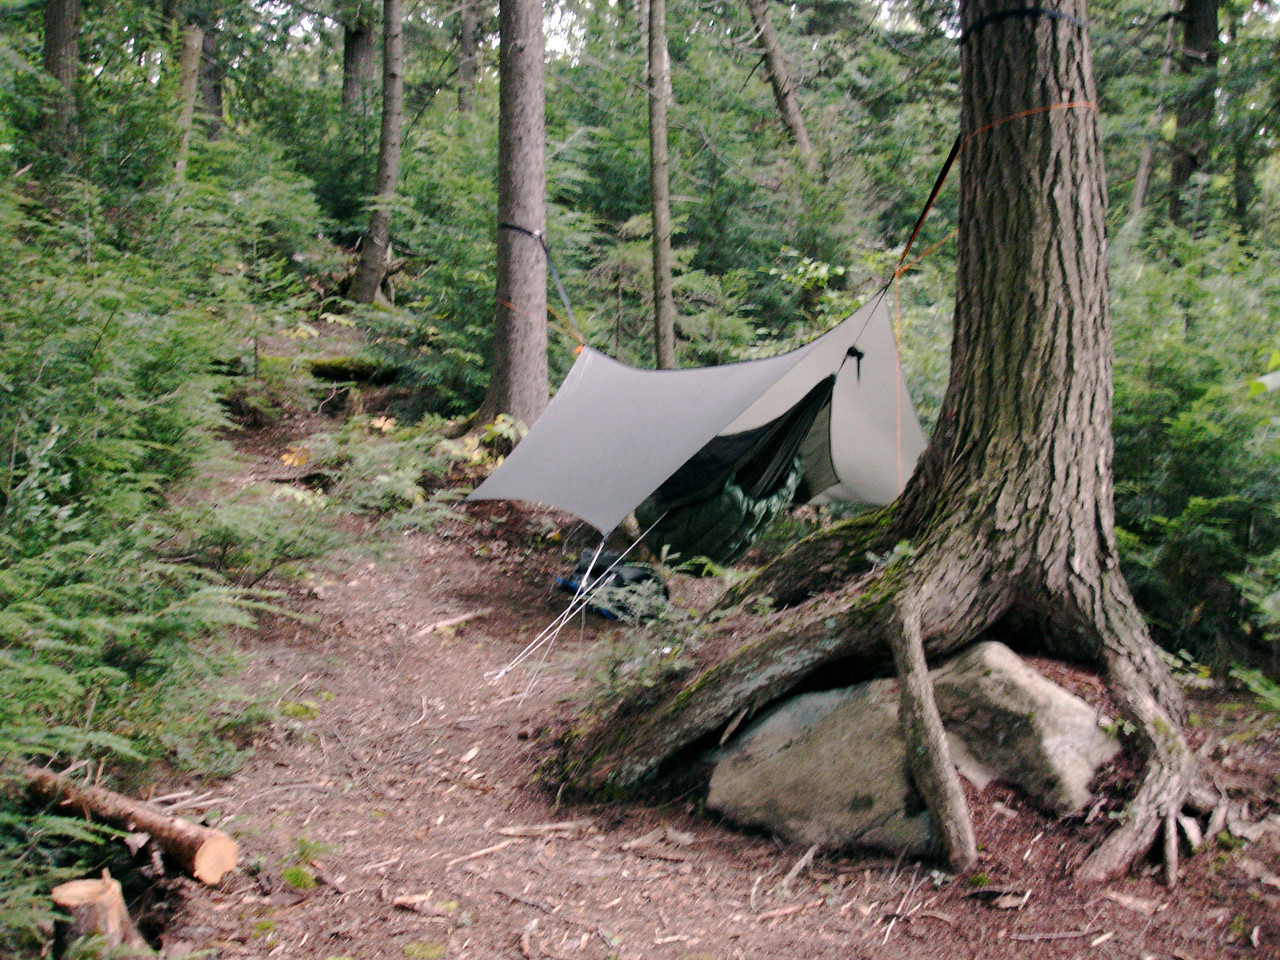 Campsite on Harness Lake:<br /> Warbonnet Blackbird hammock and Edge tarp<br /> Hammock Gear quilts